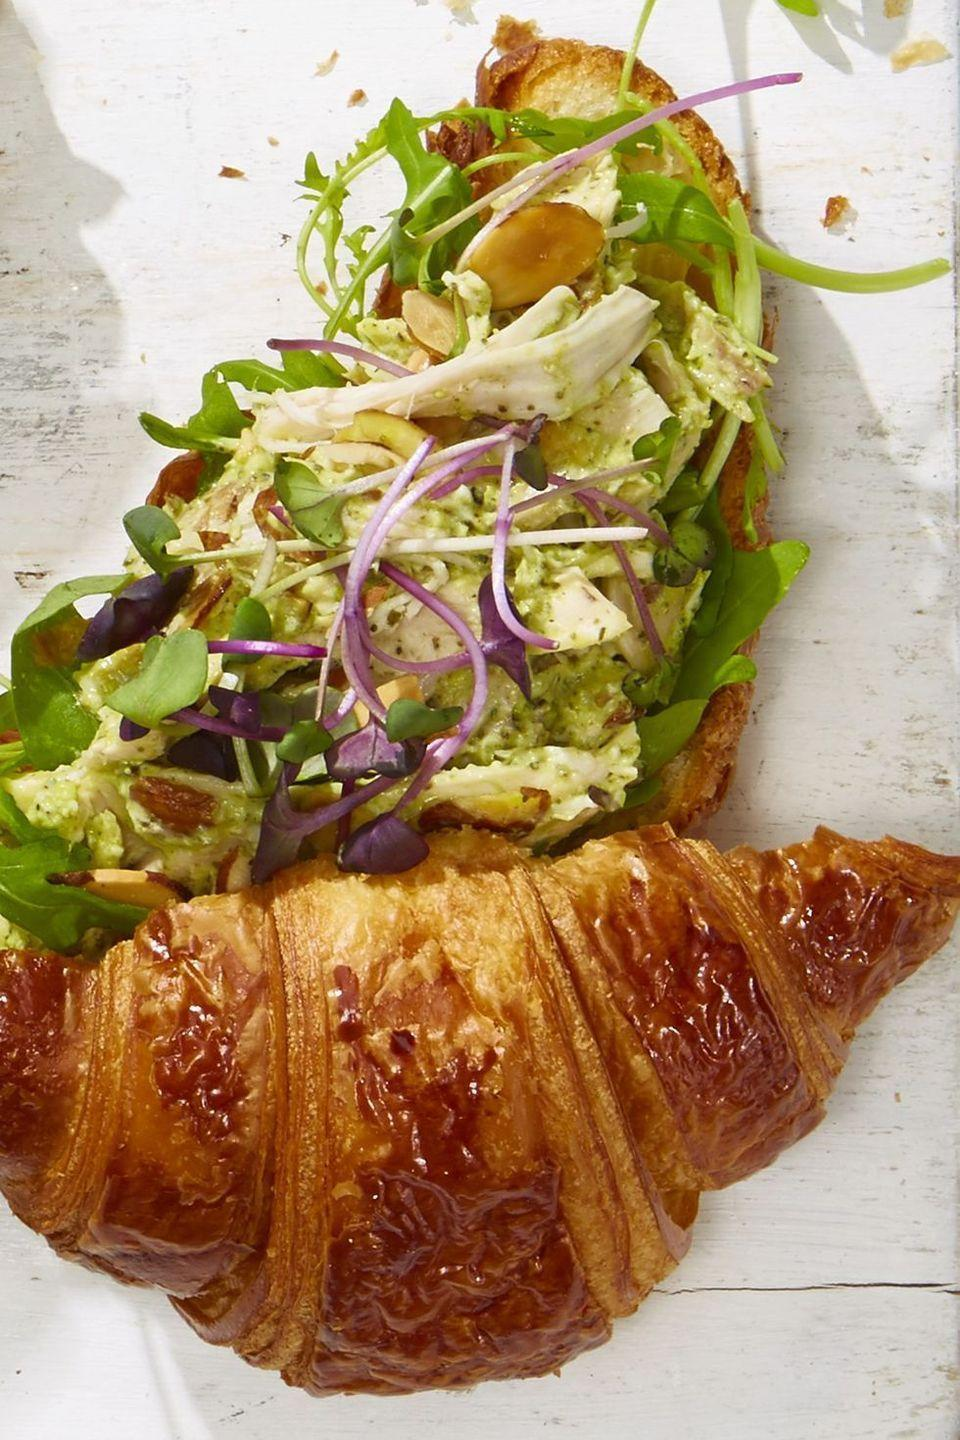 """<p>No matter if you made turkey or chicken on Thanksgiving, you can follow this simple step-by-step for a delicious lunch.</p><p><em><a href=""""https://www.goodhousekeeping.com/food-recipes/easy/a21752098/pesto-chicken-salad-croissants-recipe/"""" rel=""""nofollow noopener"""" target=""""_blank"""" data-ylk=""""slk:Get the recipe for Pesto Chicken Salad Croissants »"""" class=""""link rapid-noclick-resp"""">Get the recipe for Pesto Chicken Salad Croissants »</a></em></p>"""